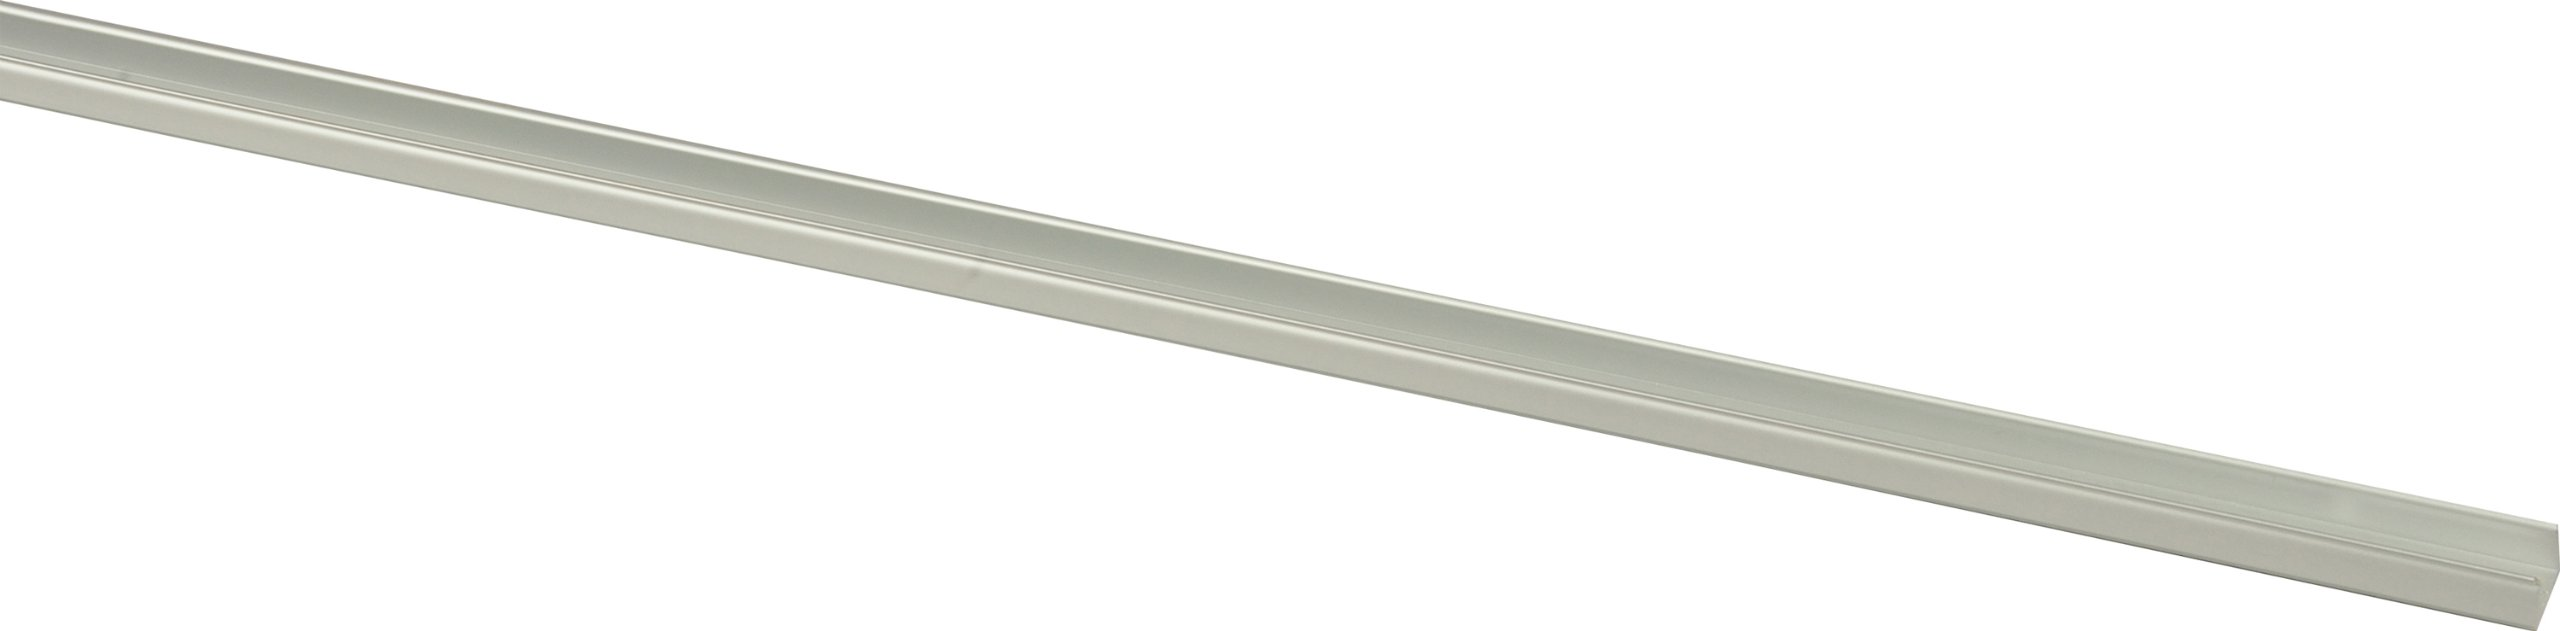 Maxim 53373 StarStrand 60'' Aluminum Channel, Glass, Bulb , 40W Max., Dry Safety Rating, Shade Material, Rated Lumens